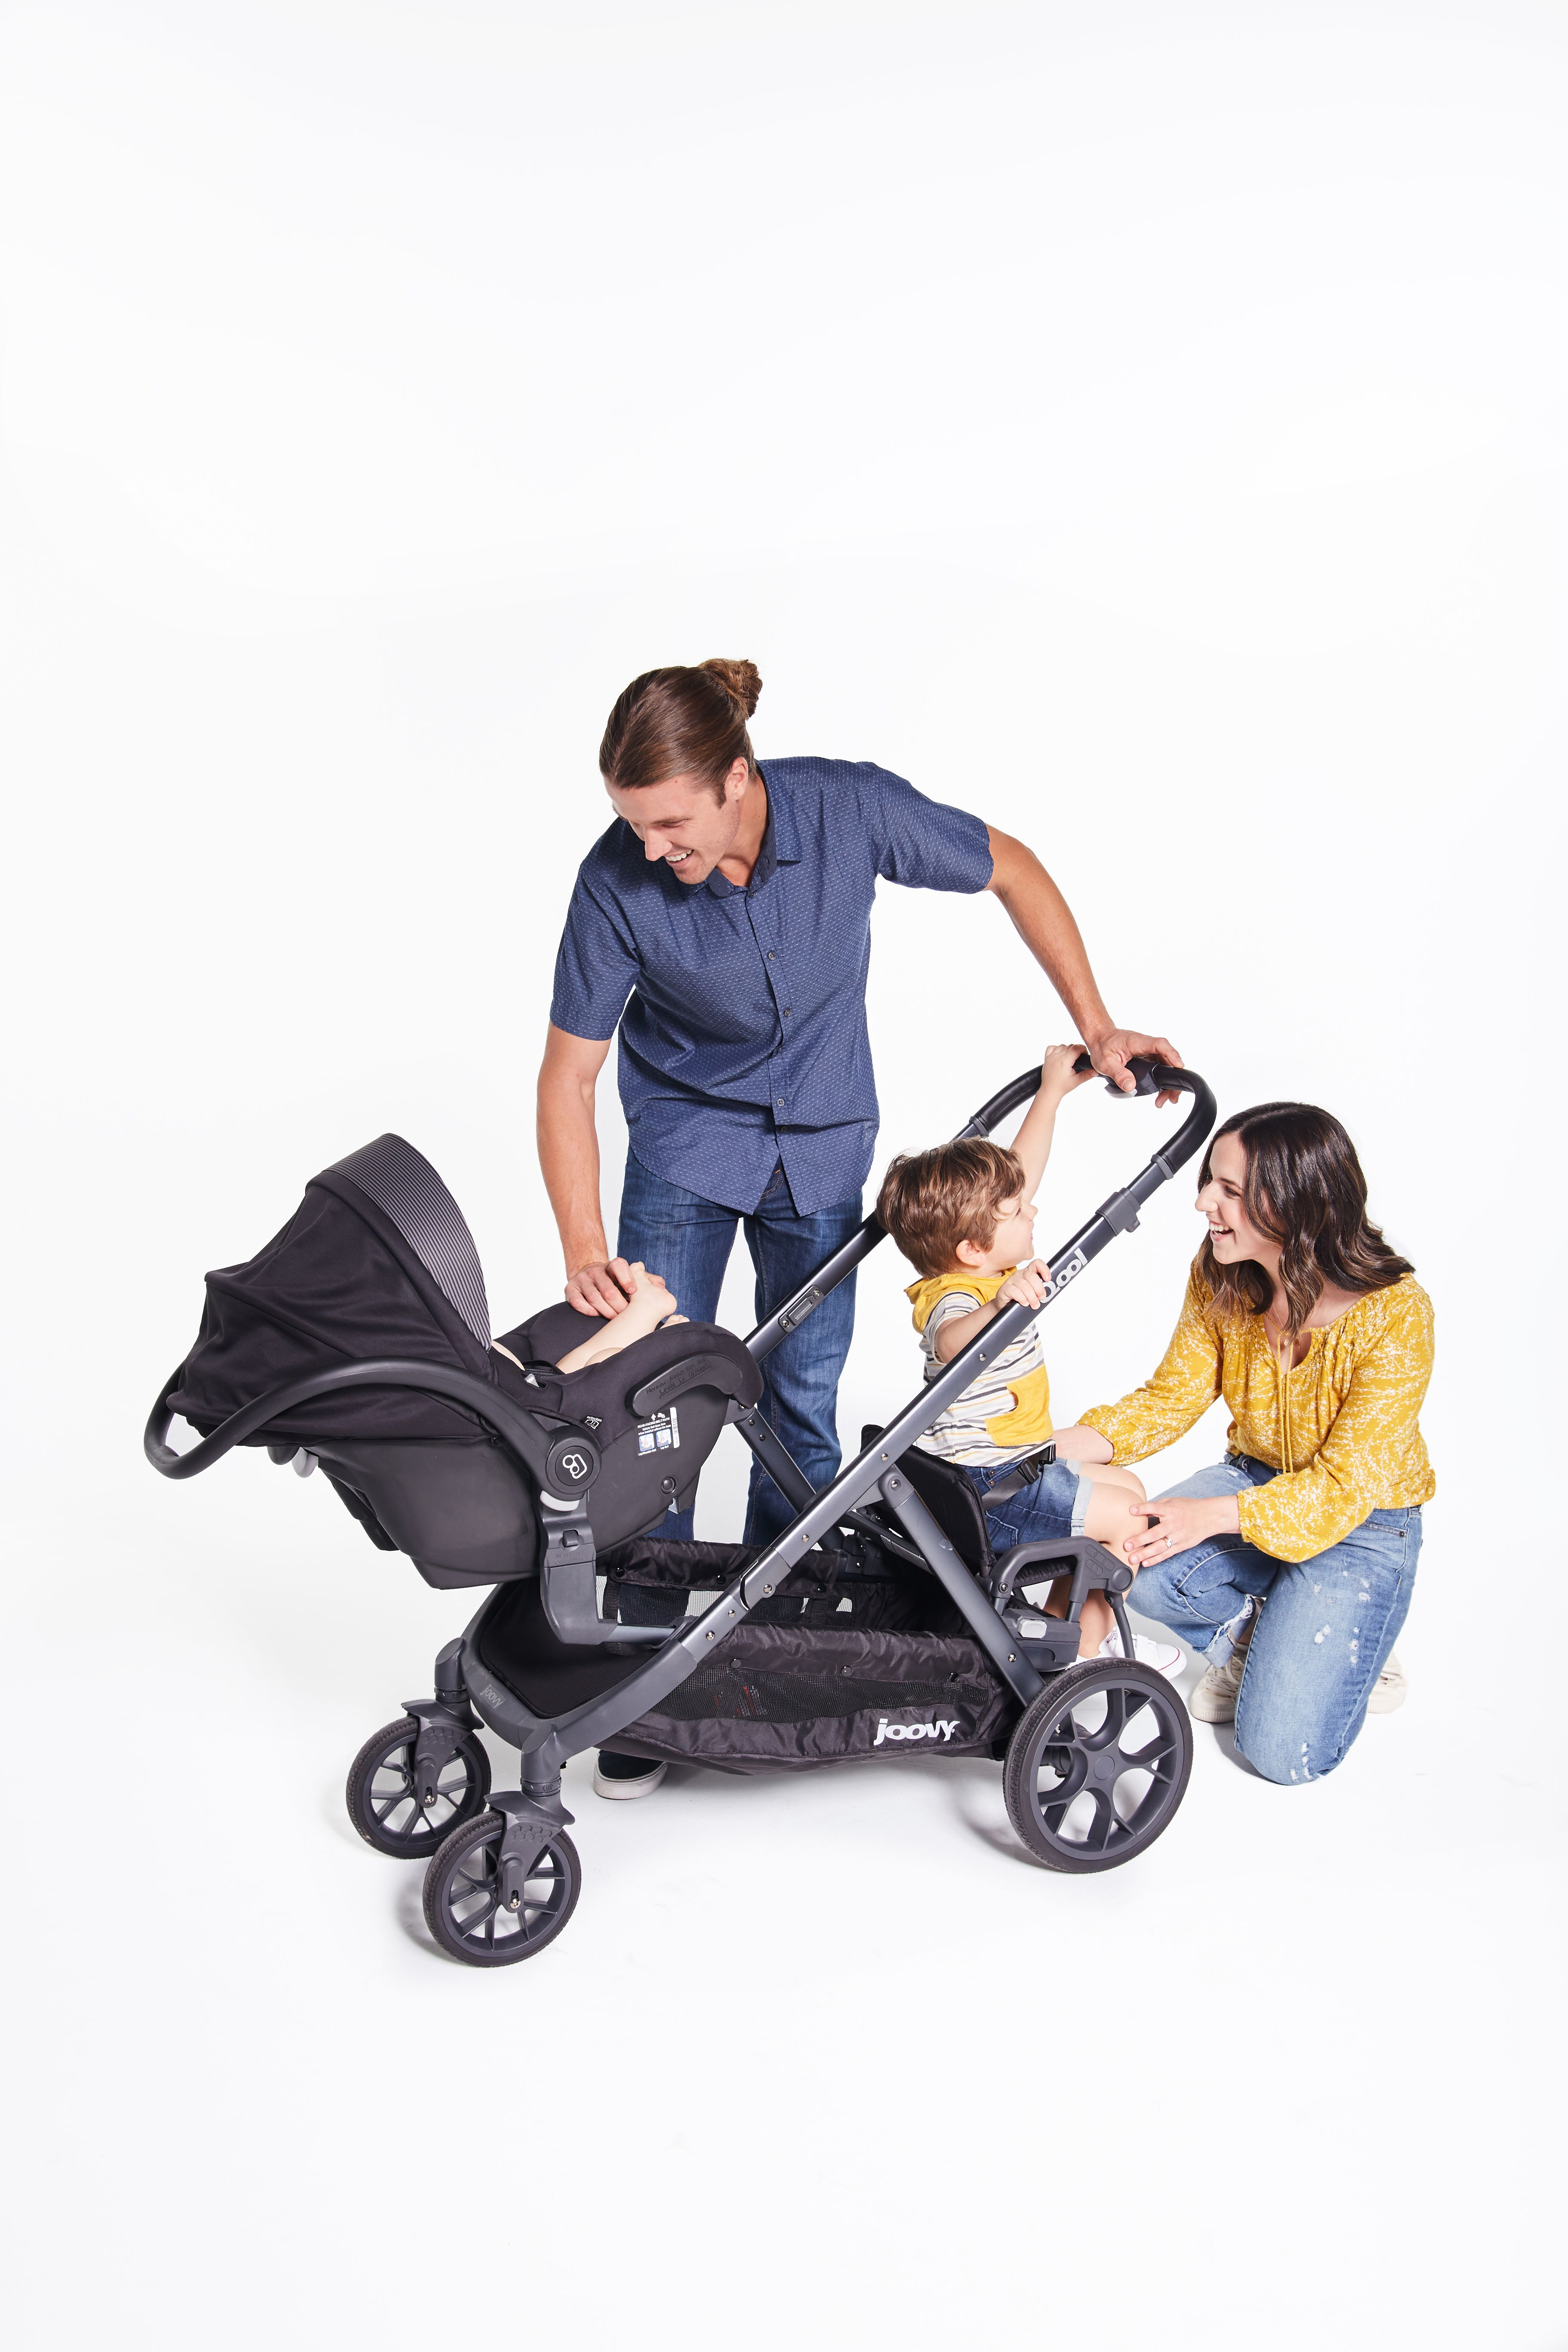 Qool Strollers at disney world, How to have twins, Three